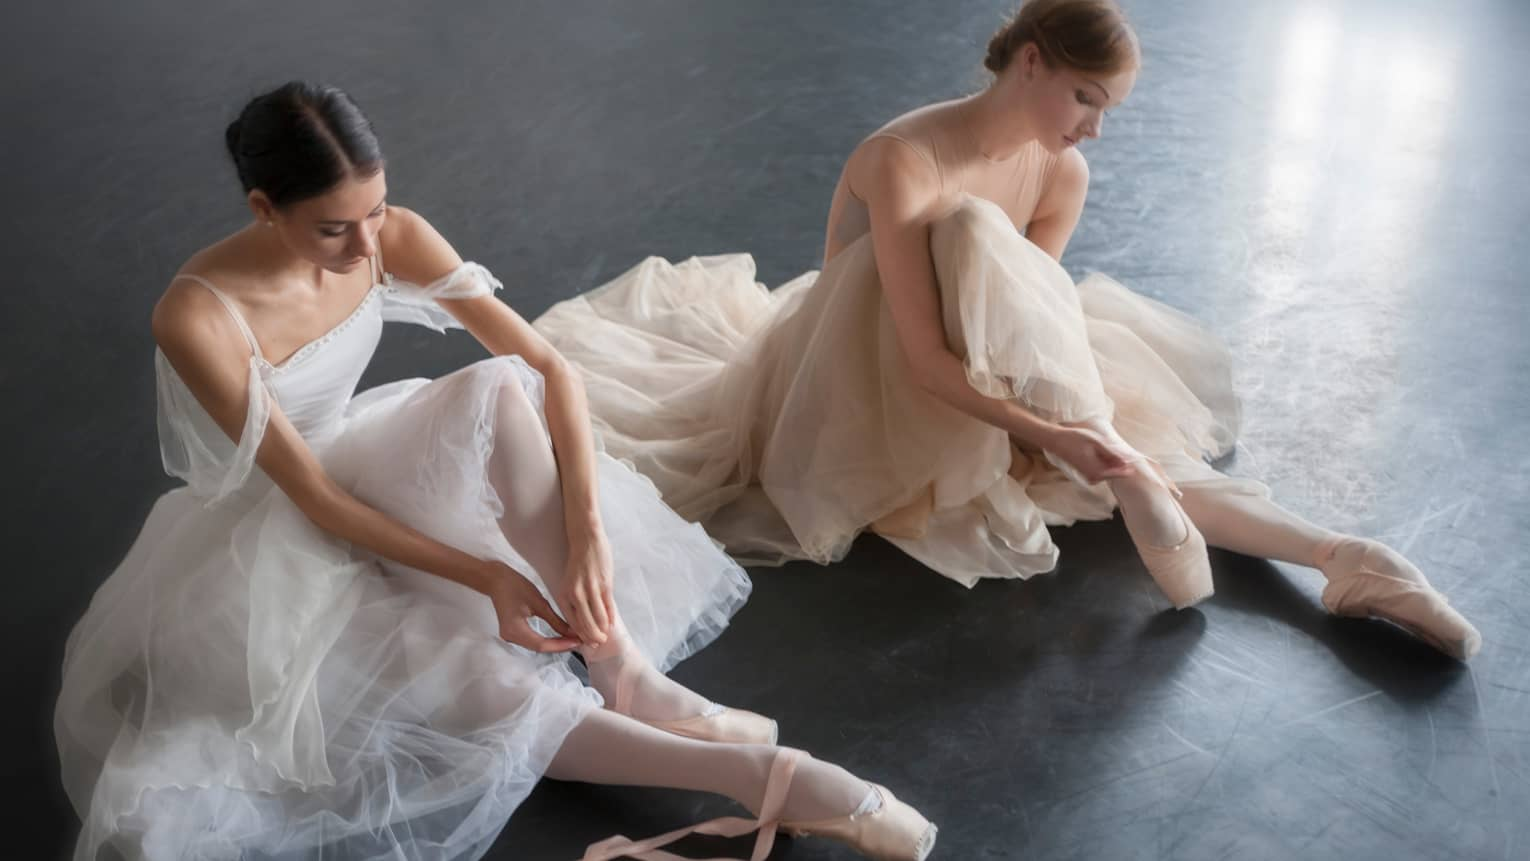 Two ballerinas in long dresses sit on floor, lace up ballet shoes at Mikhailovsky Theatre